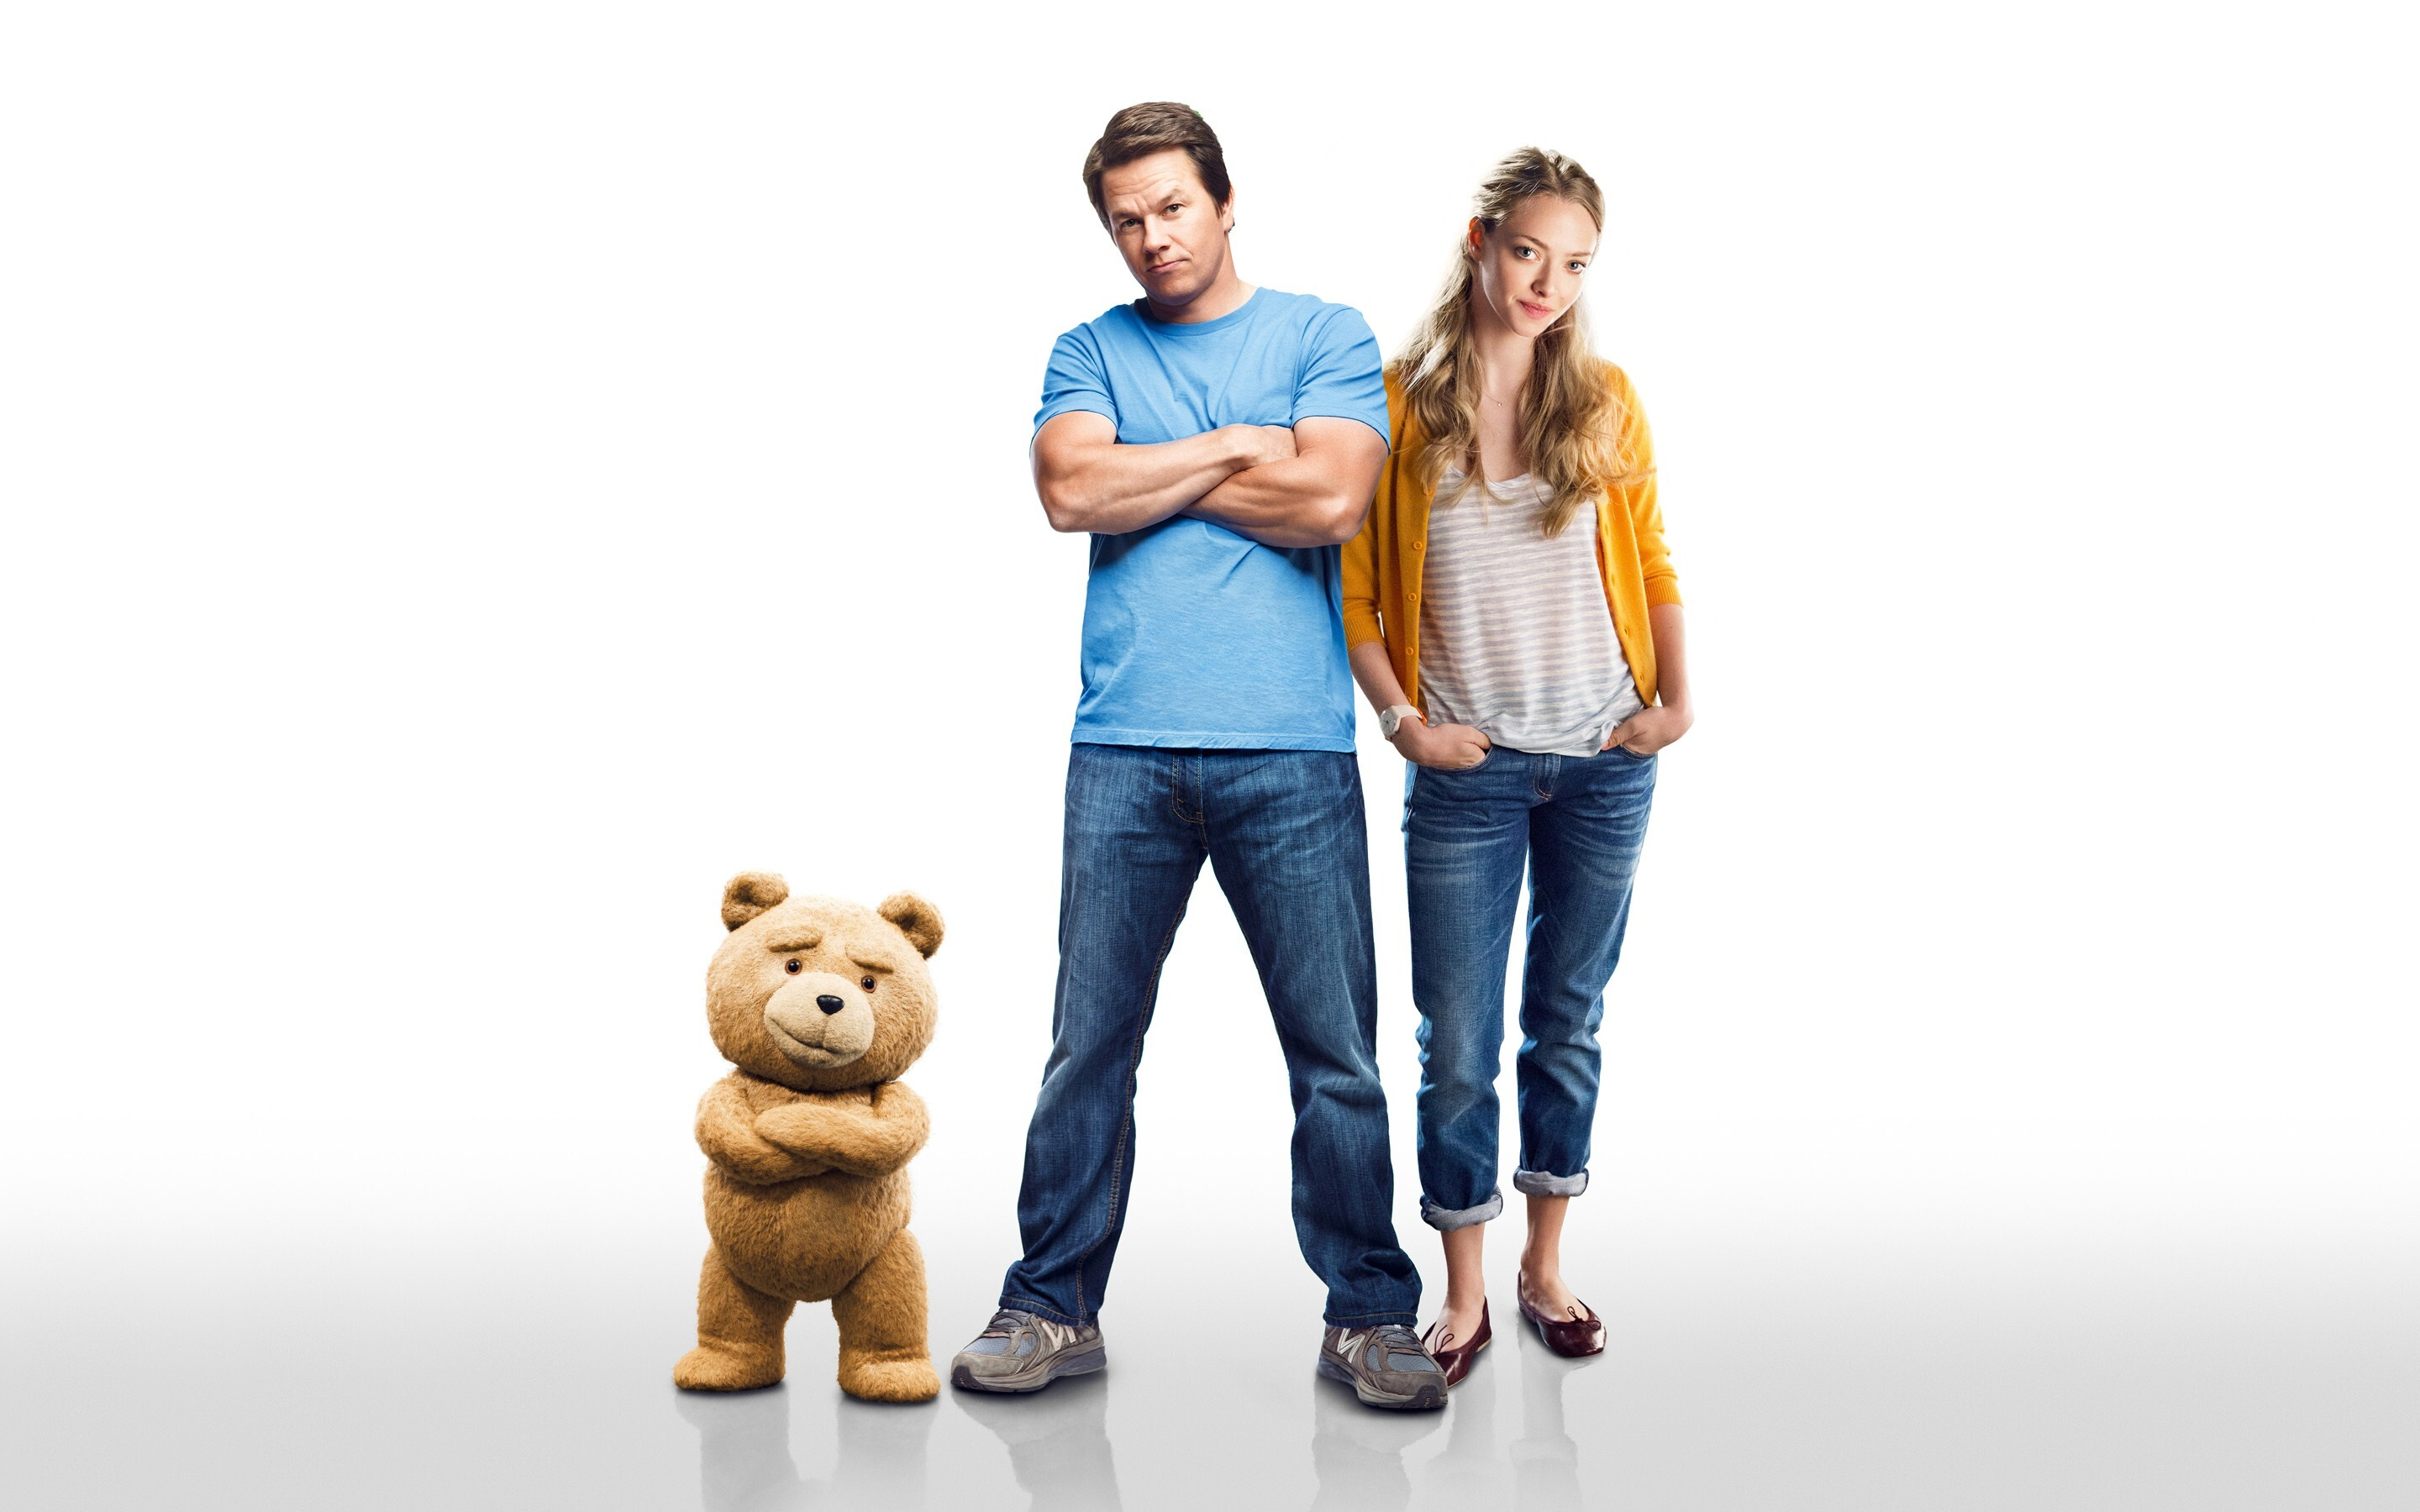 Ted (2012)hd watch the full movie & free download | 85 streamer.